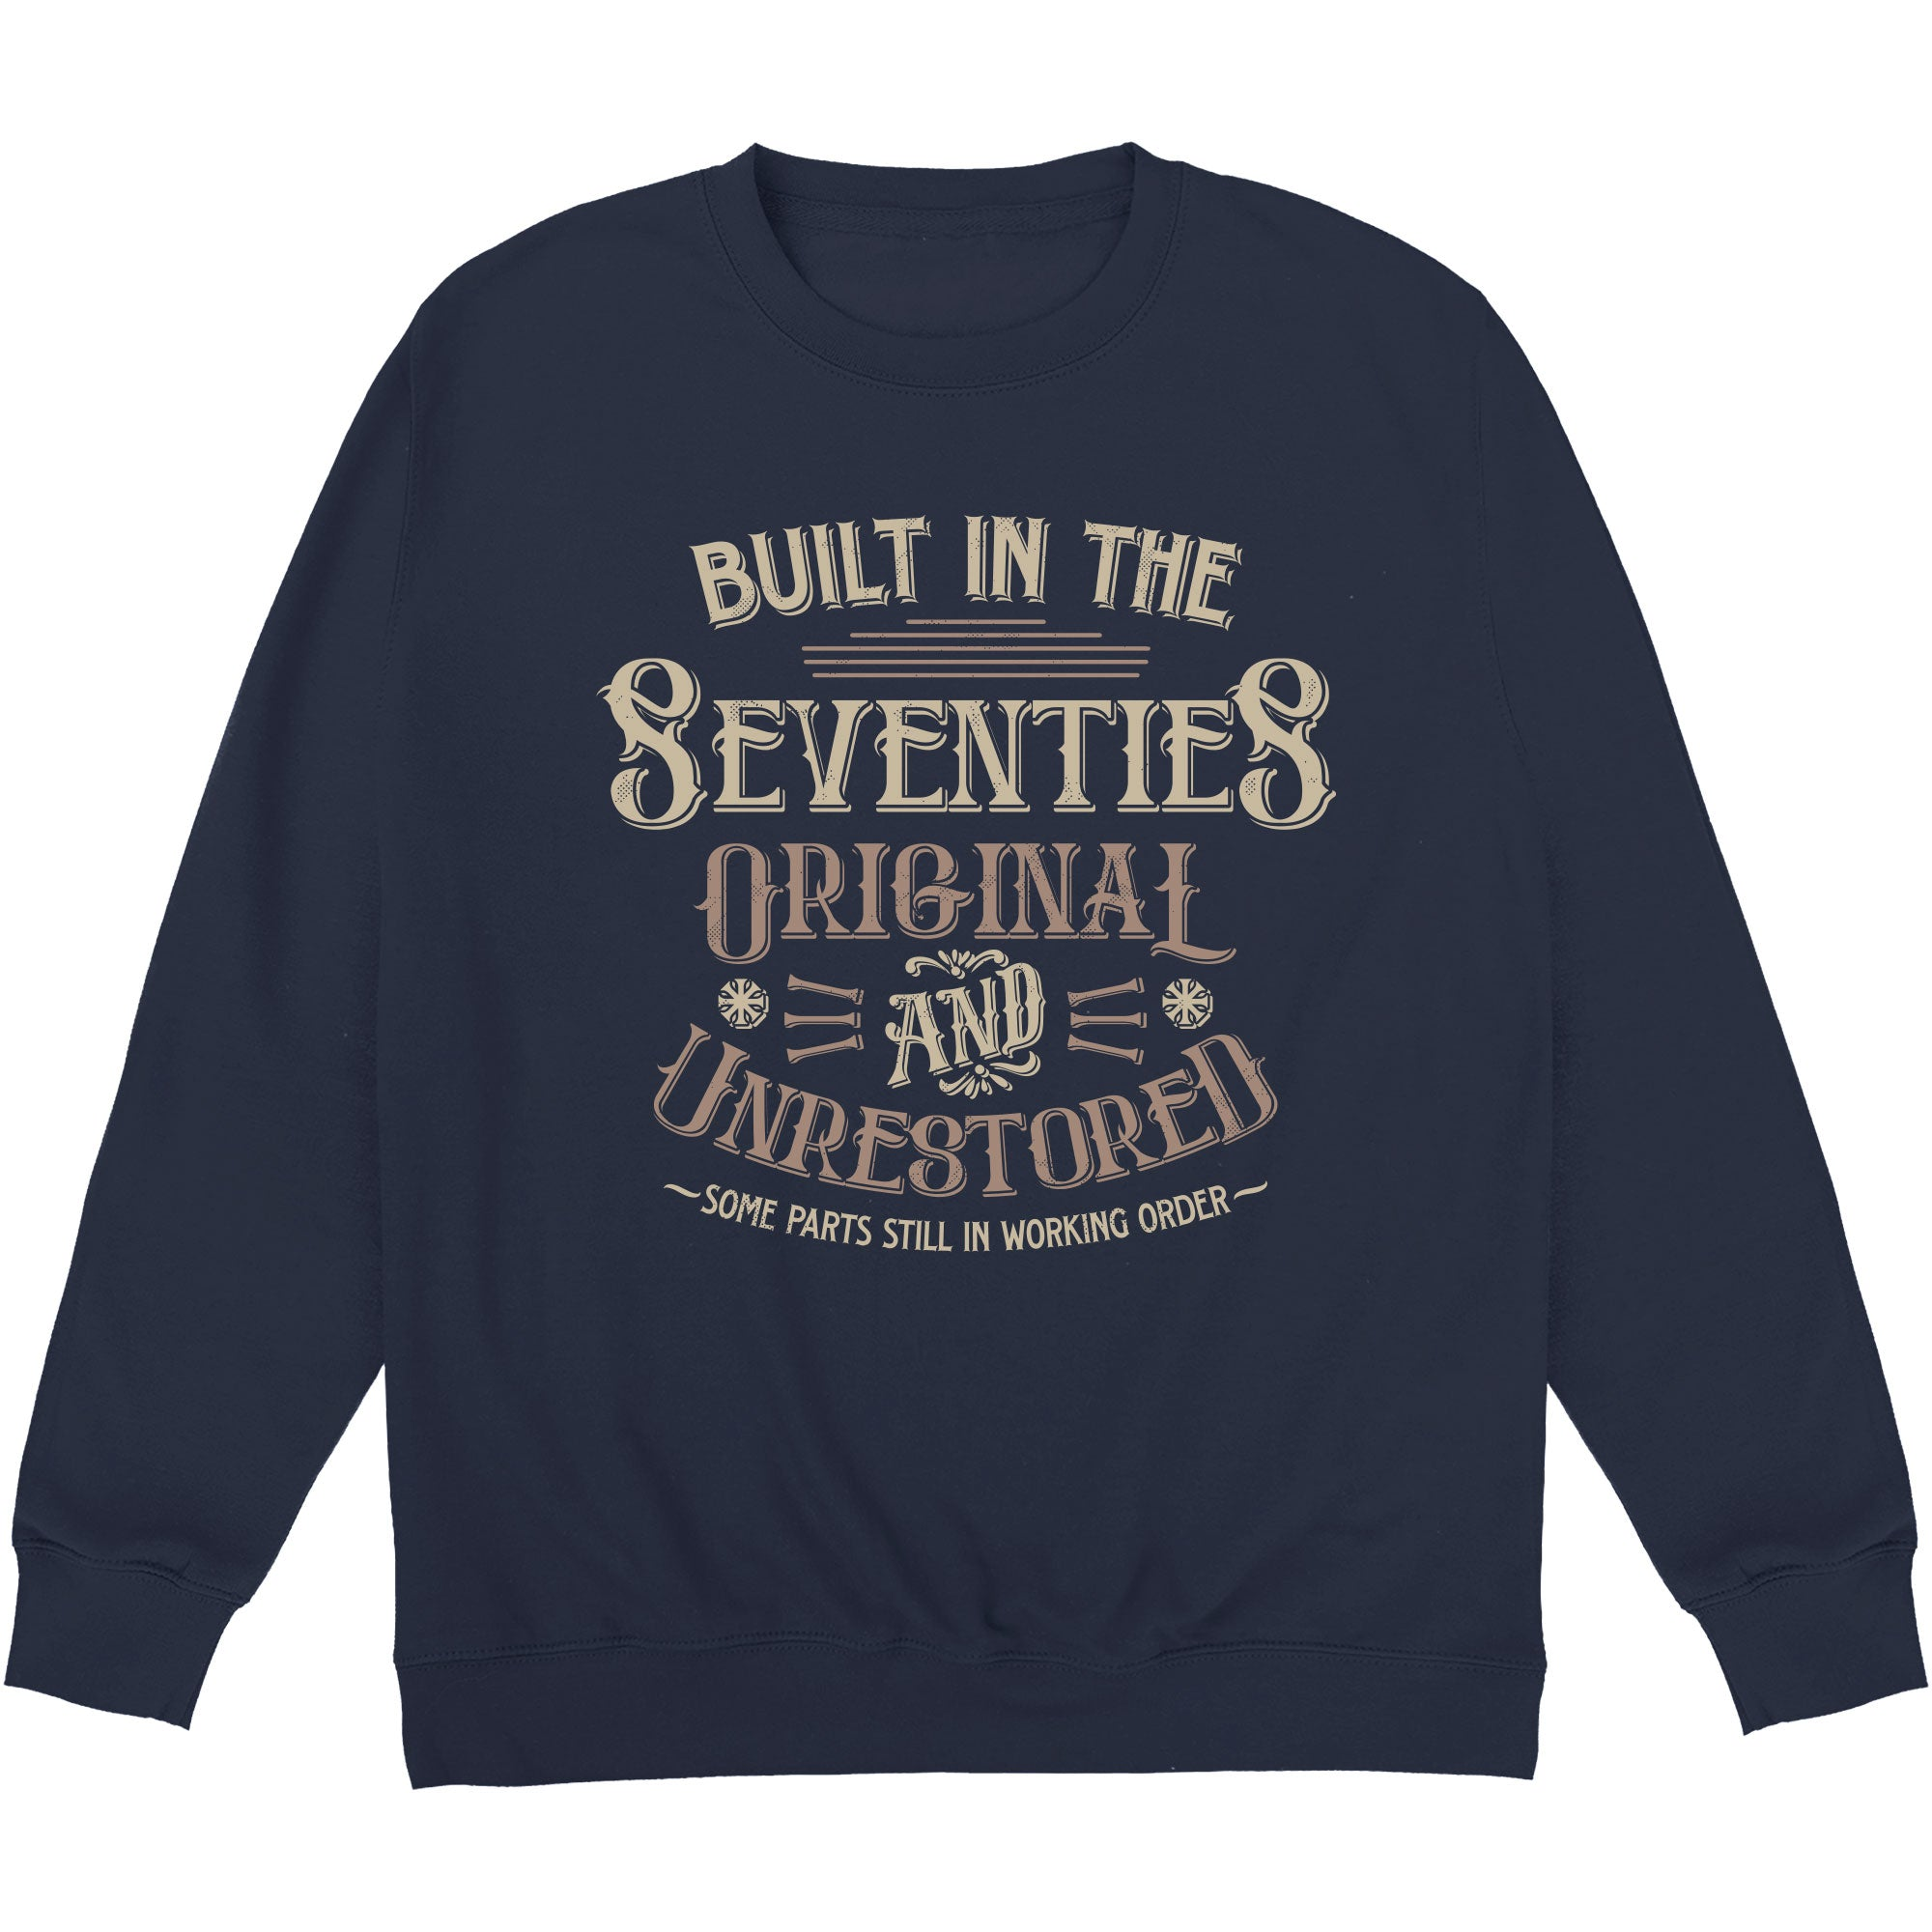 CHEAP Whiskey Built In the Seventies Sweatshirt 24322678411 – Clothing Accessories